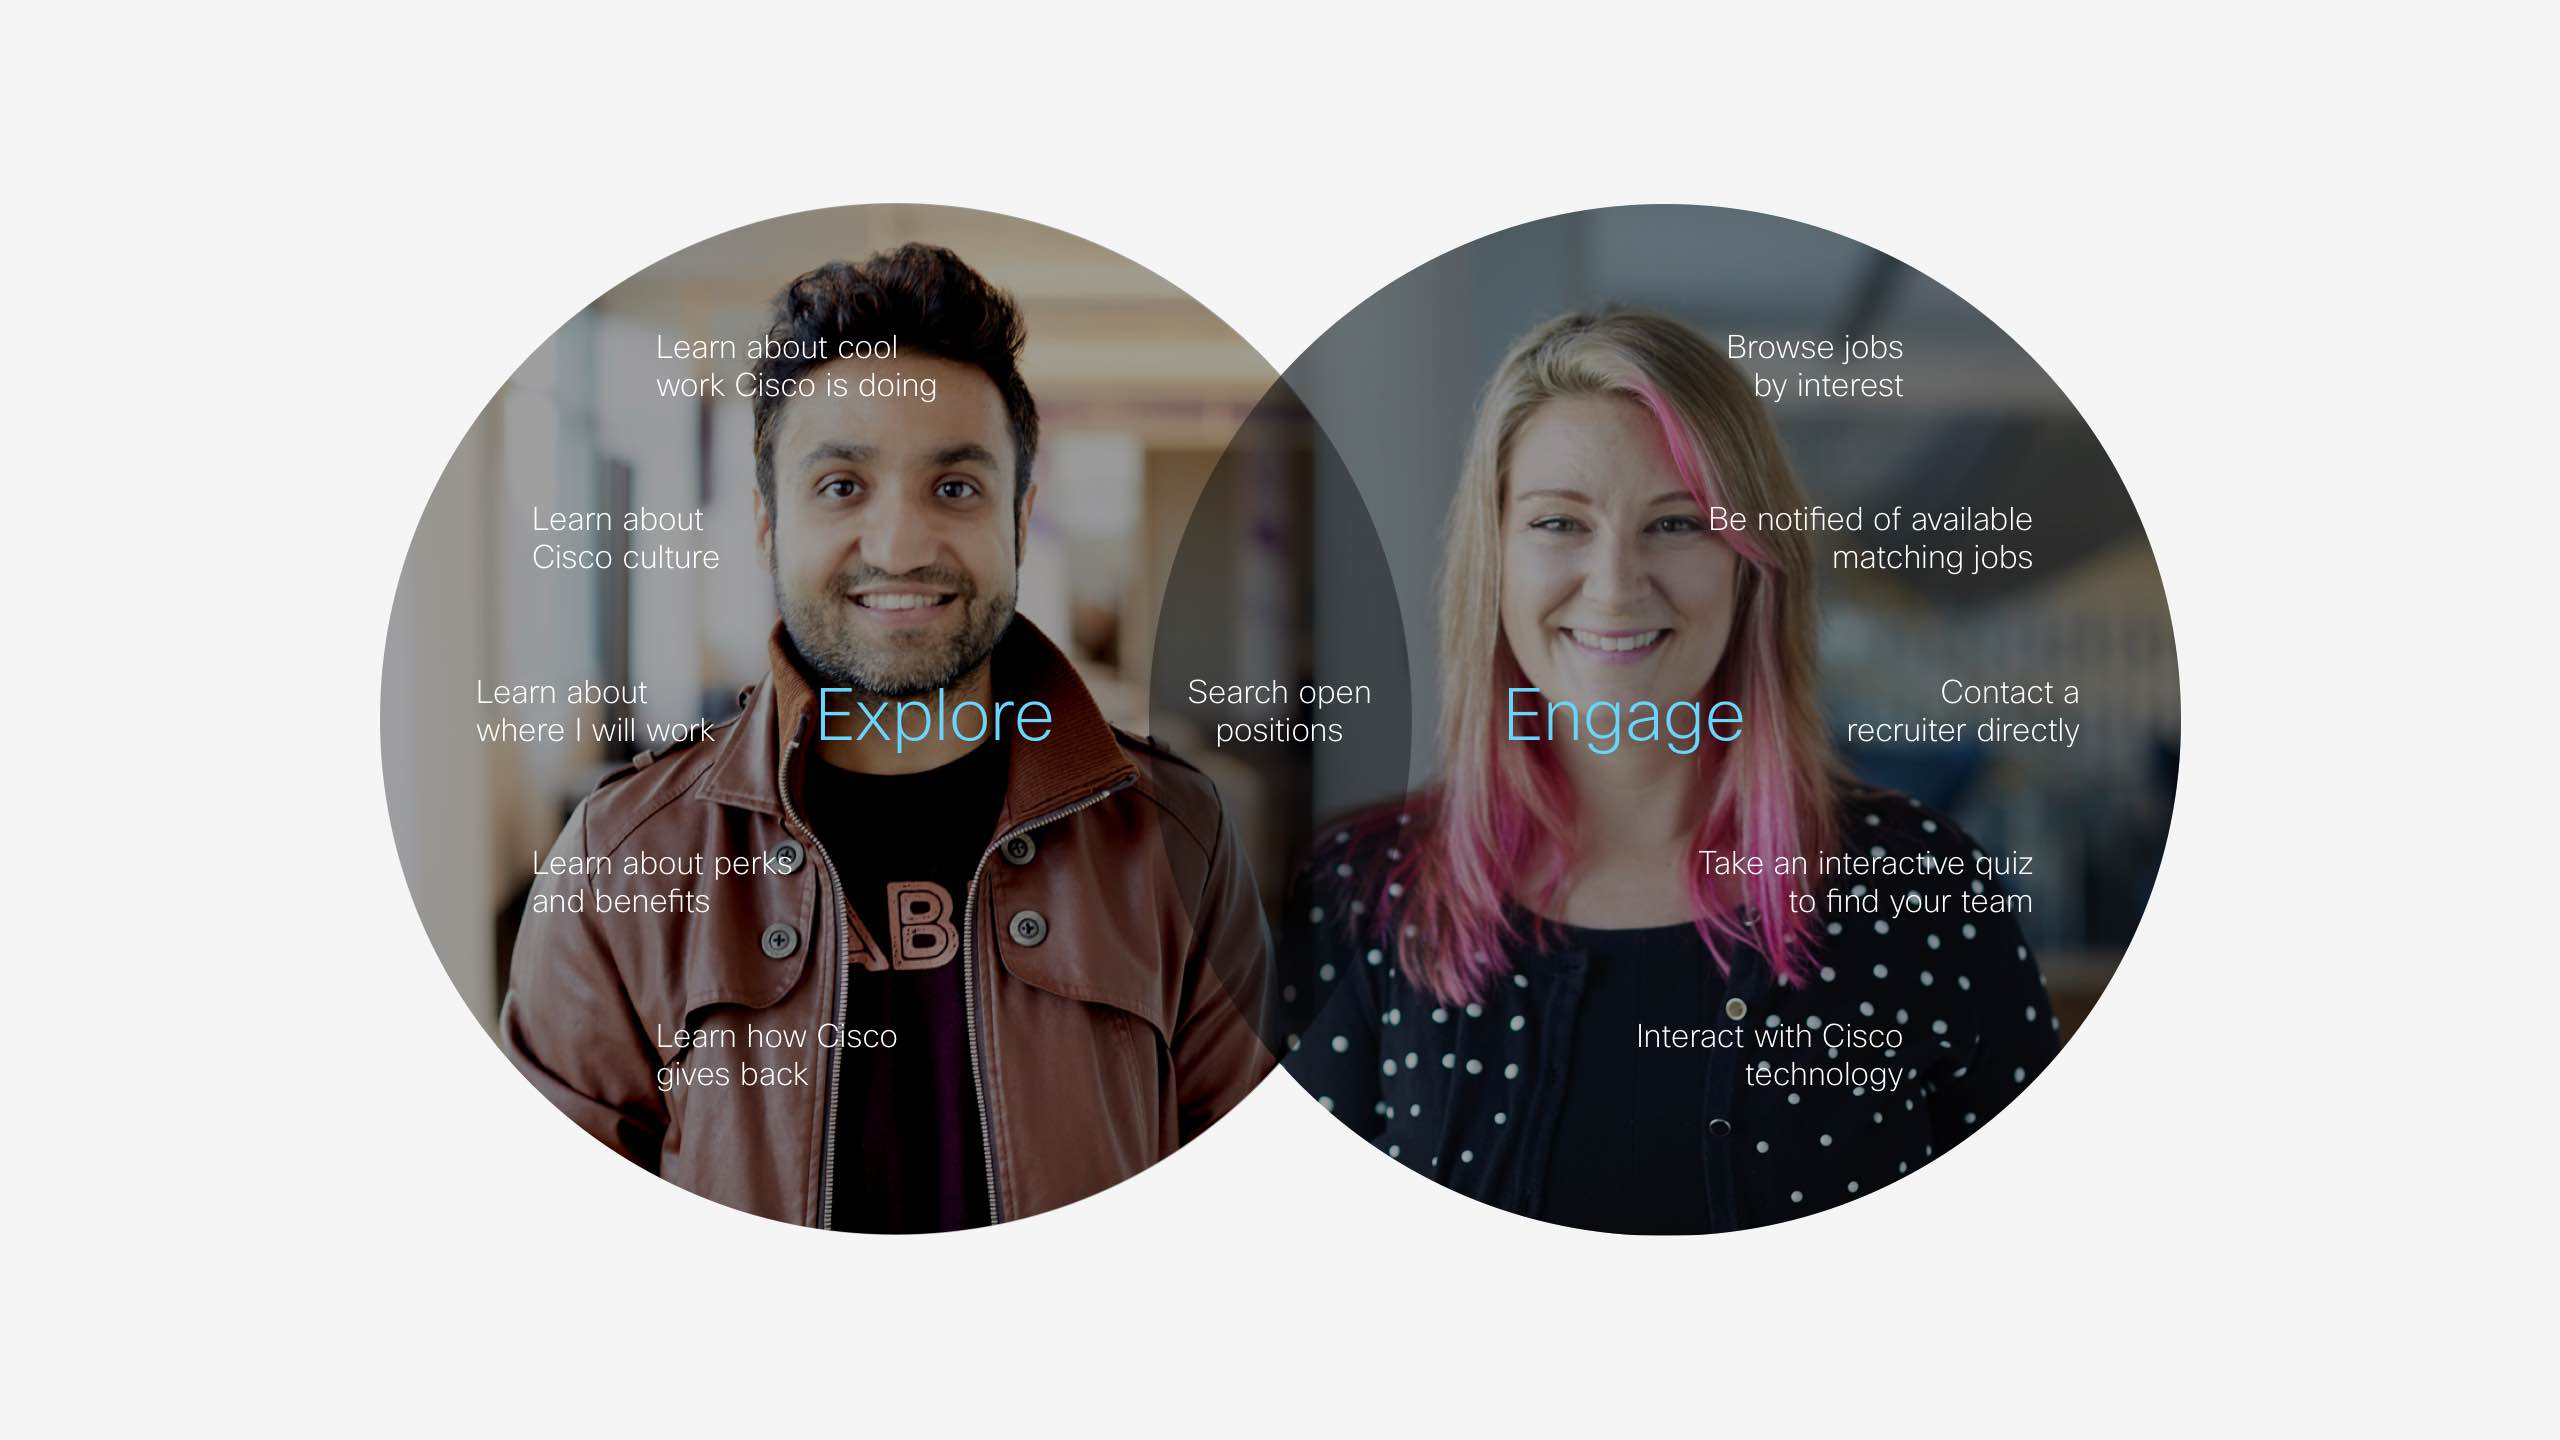 cisco careers user modes Explore and Engage